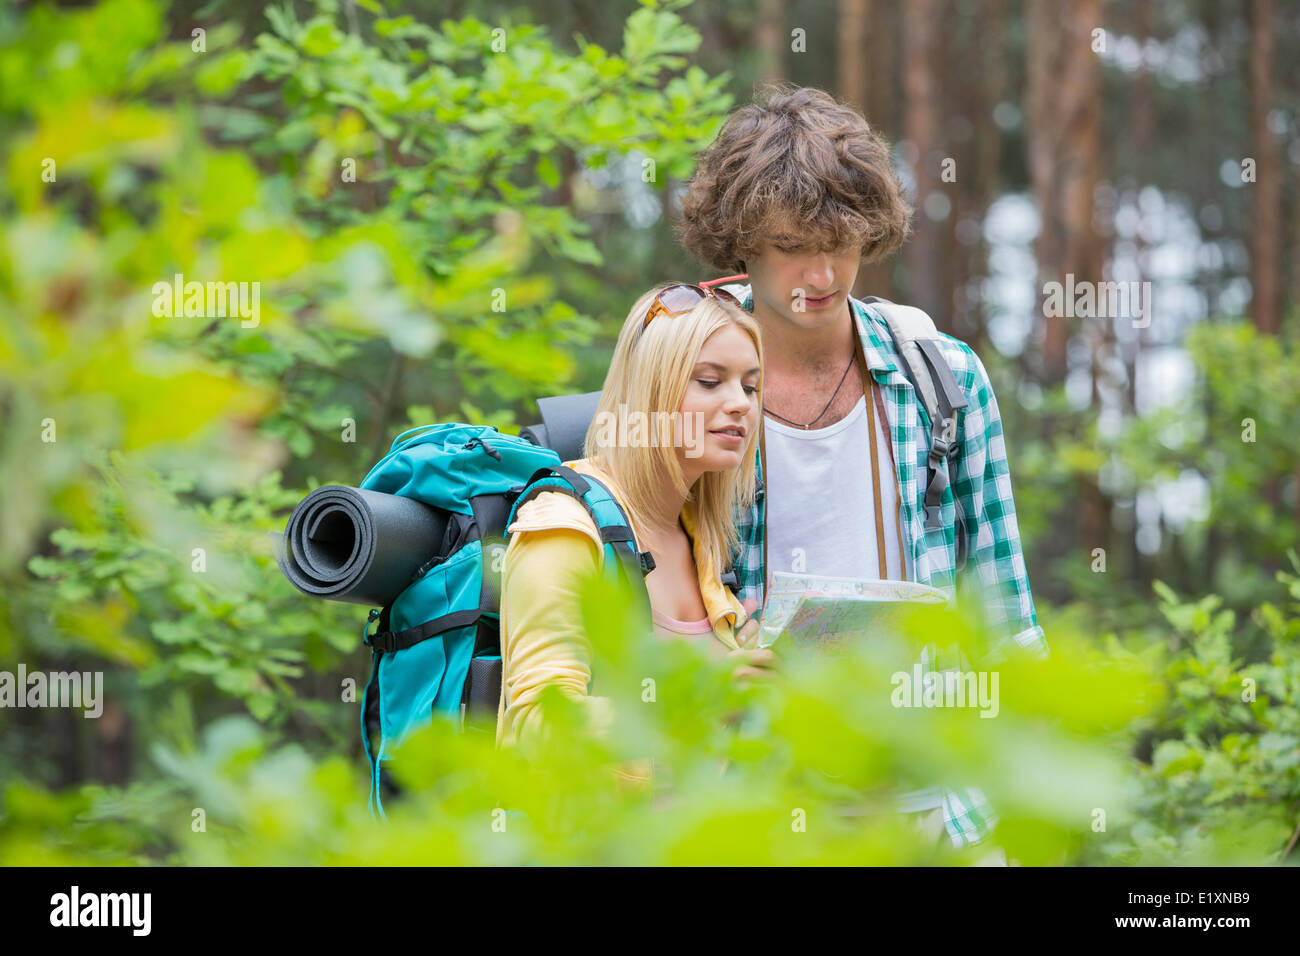 Hiking couple reading map together in forest - Stock Image